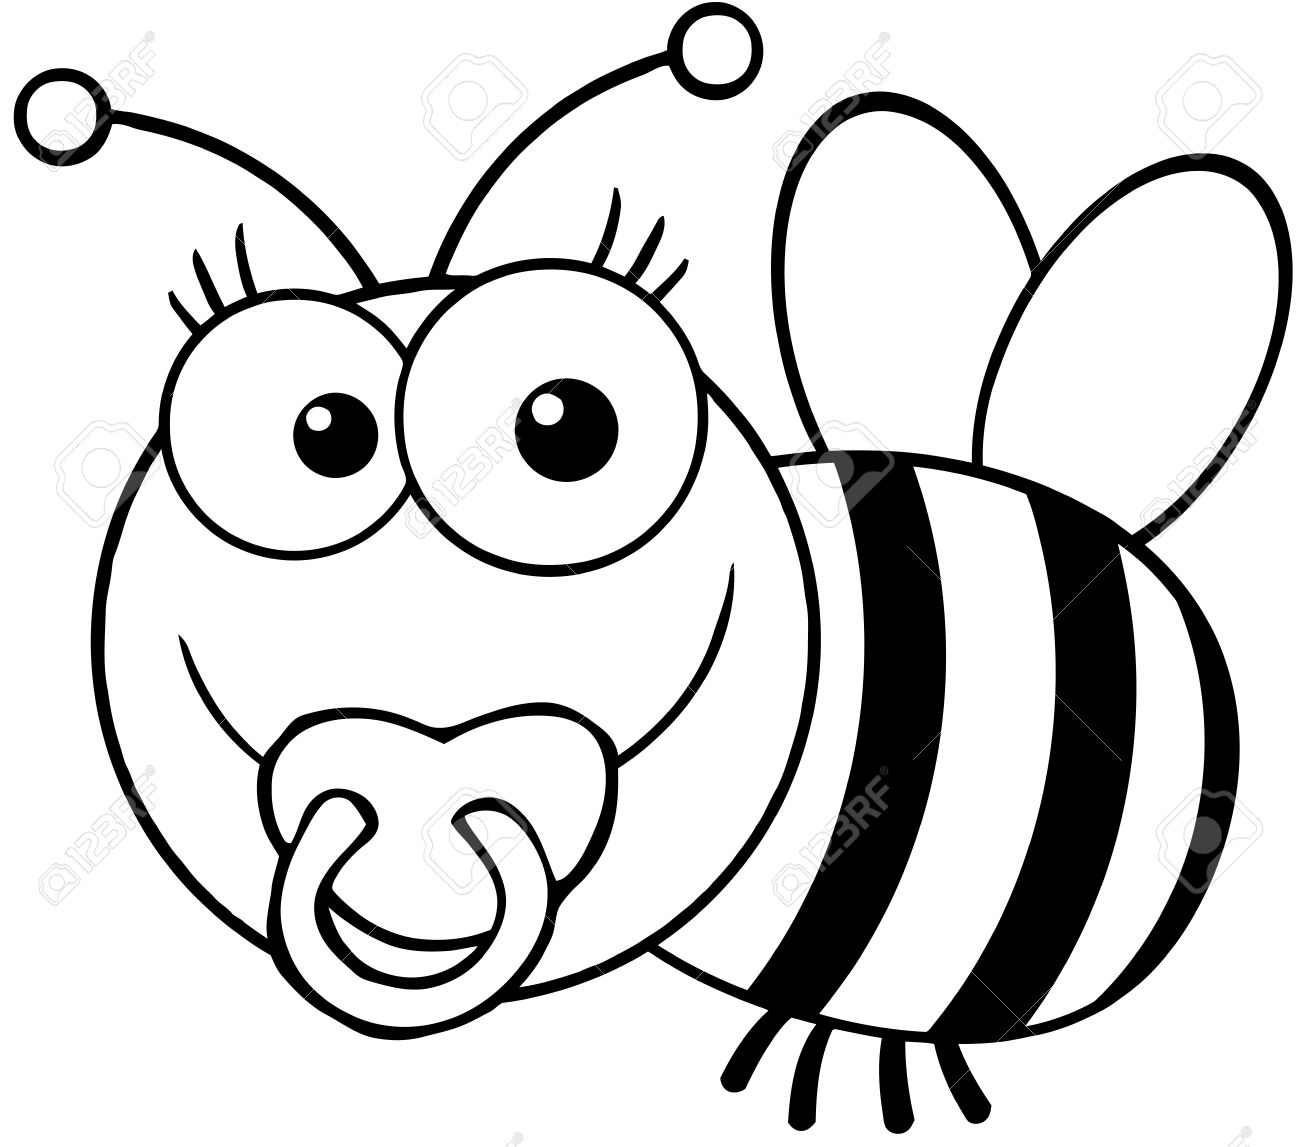 outlined baby bee cartoon mascot character royalty free cliparts